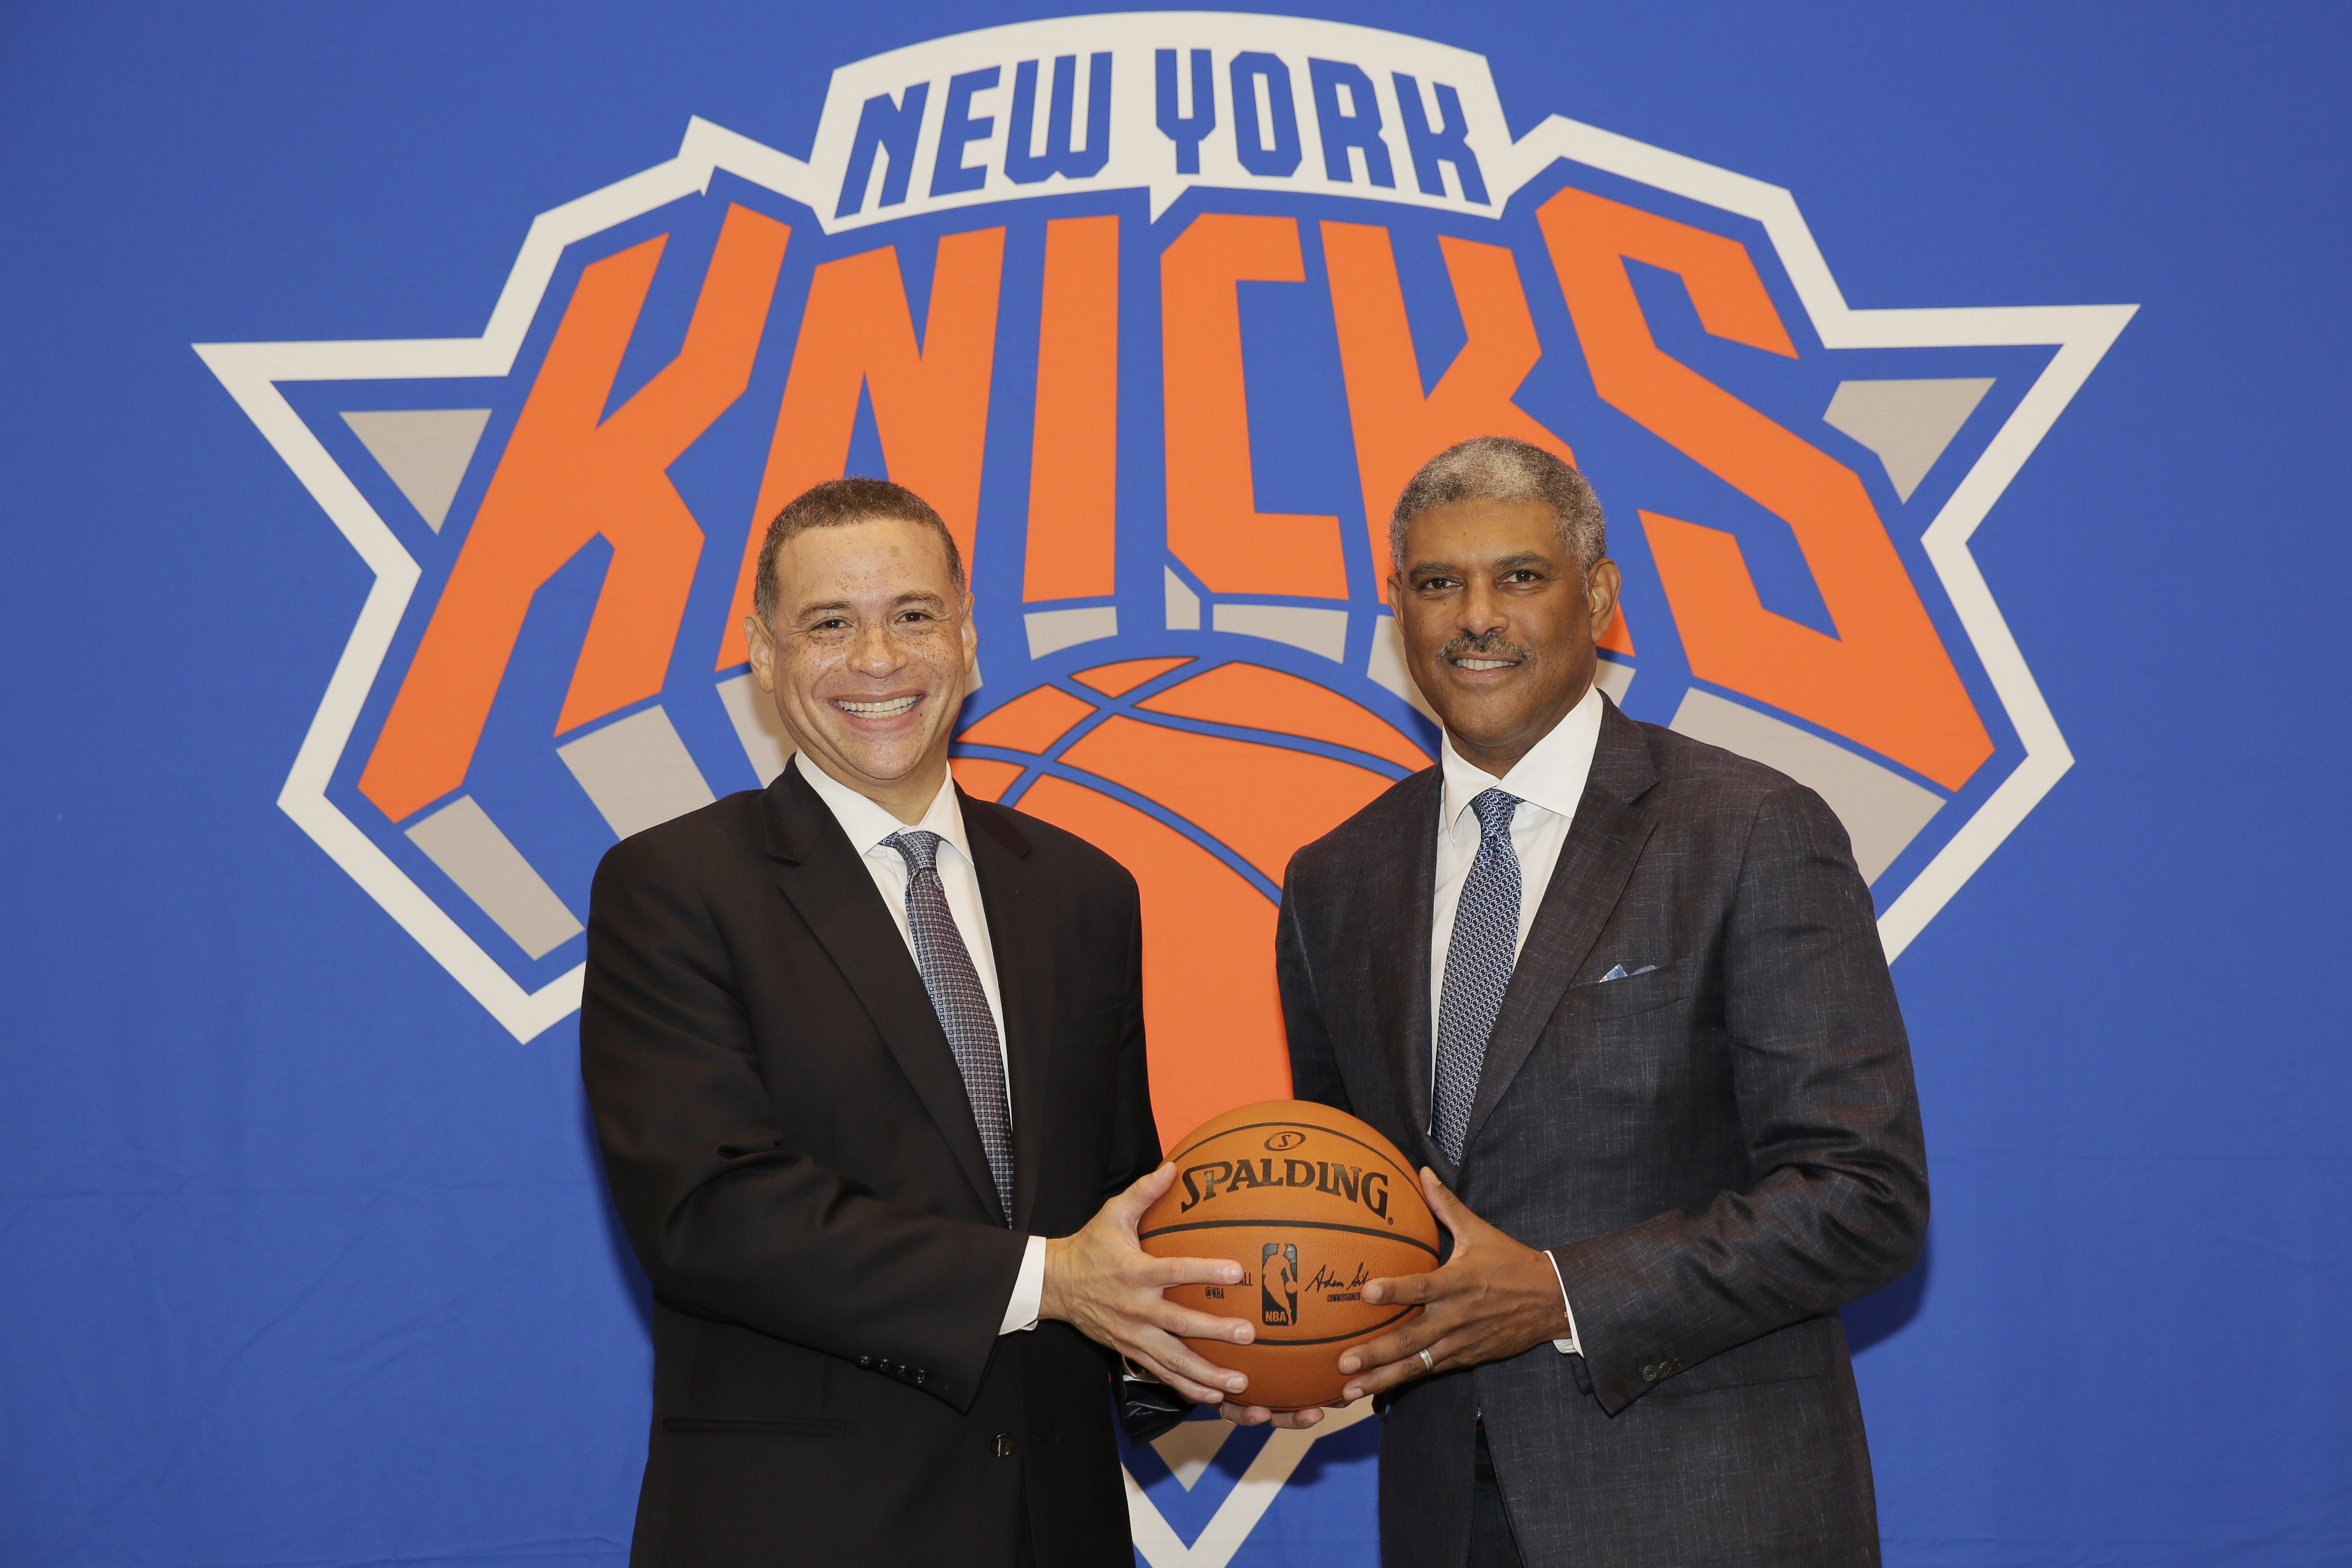 816449642-new-york-knicks-introduce-scott-perry-as-general-manager.jpg